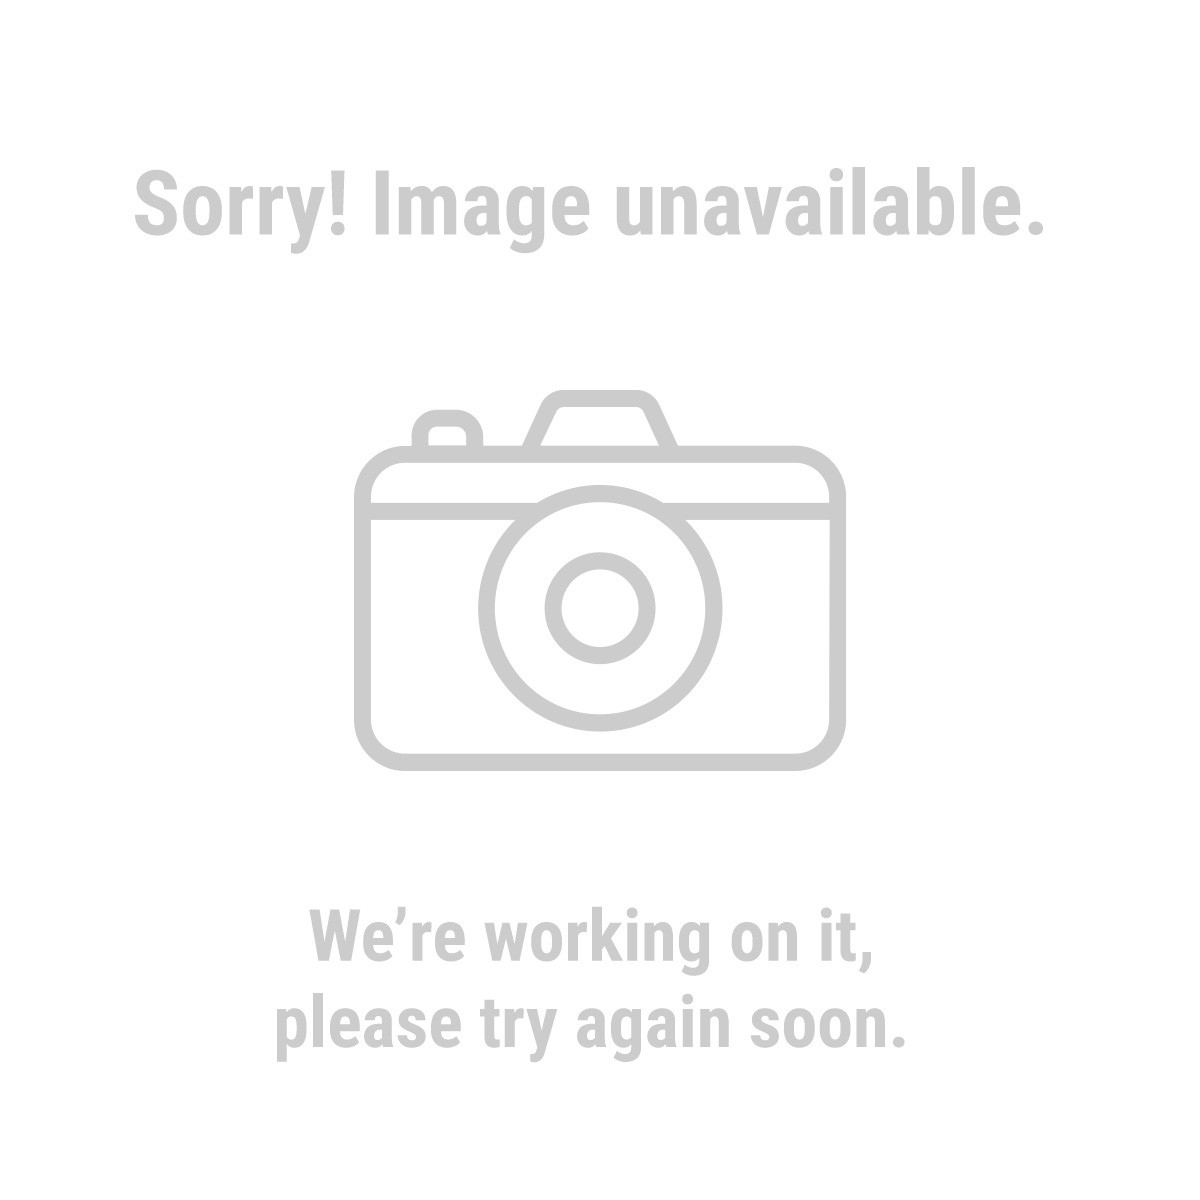 HFT 61909 50 ft. x 16 Gauge Outdoor Extension Cord